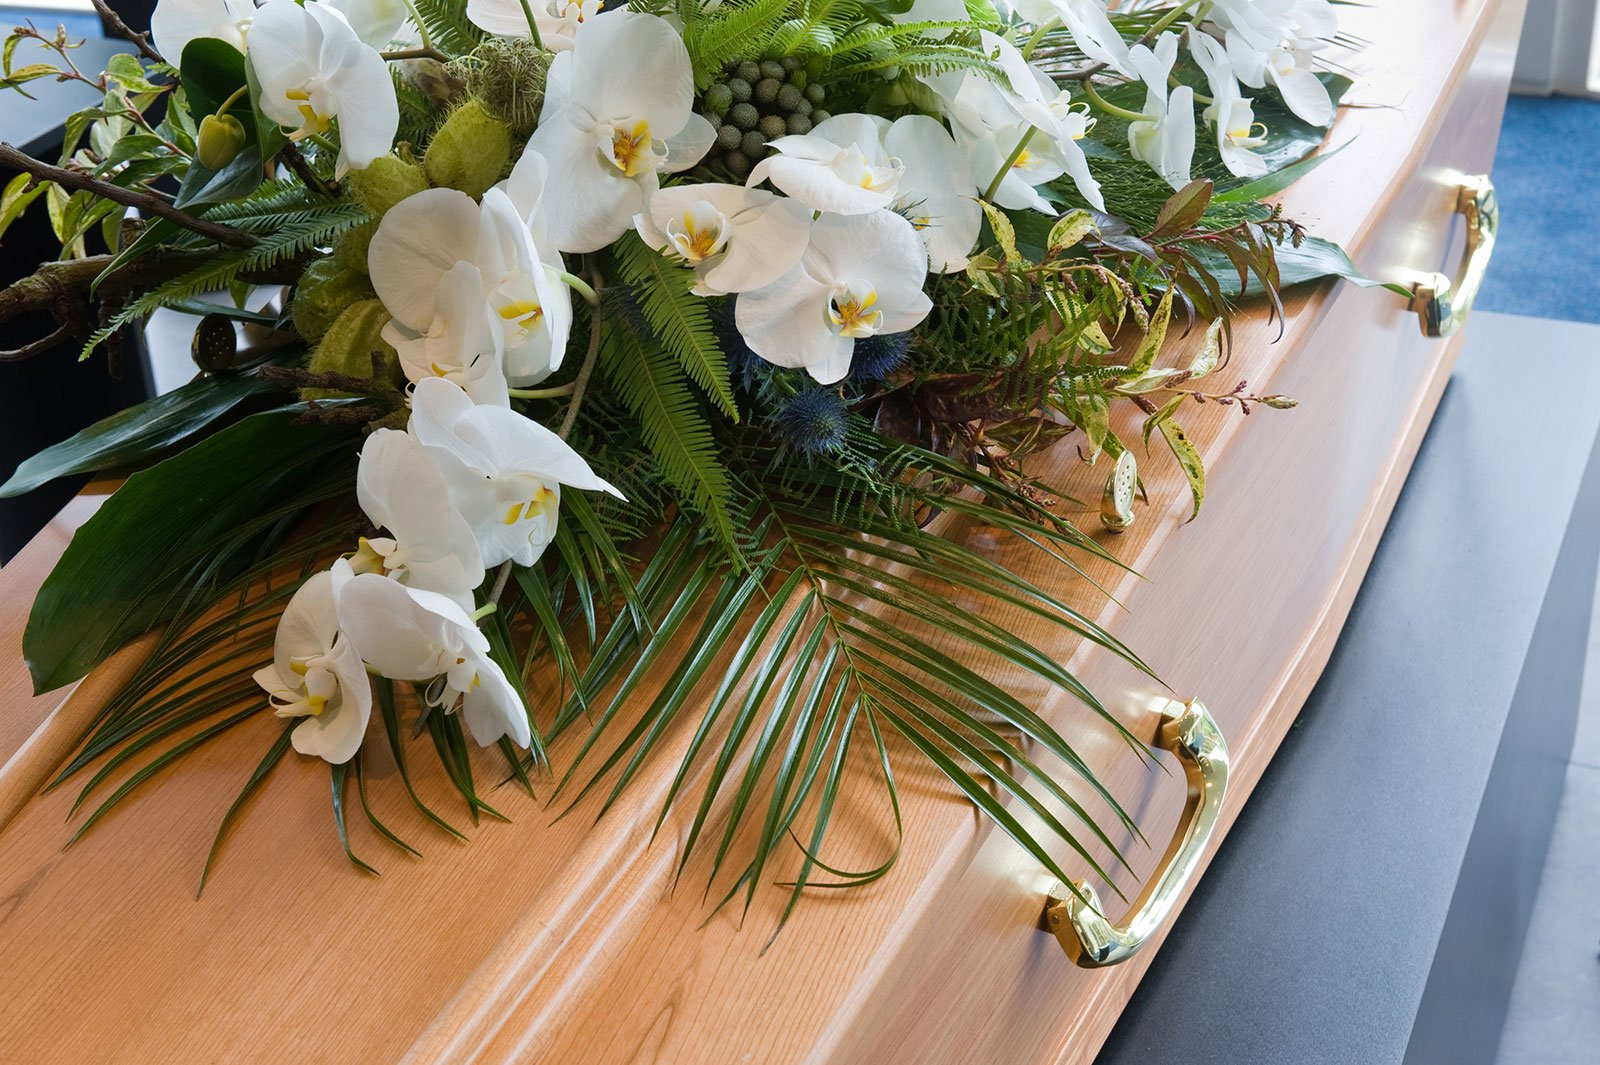 close-up-coffin-flowers-1600x1065.jpg